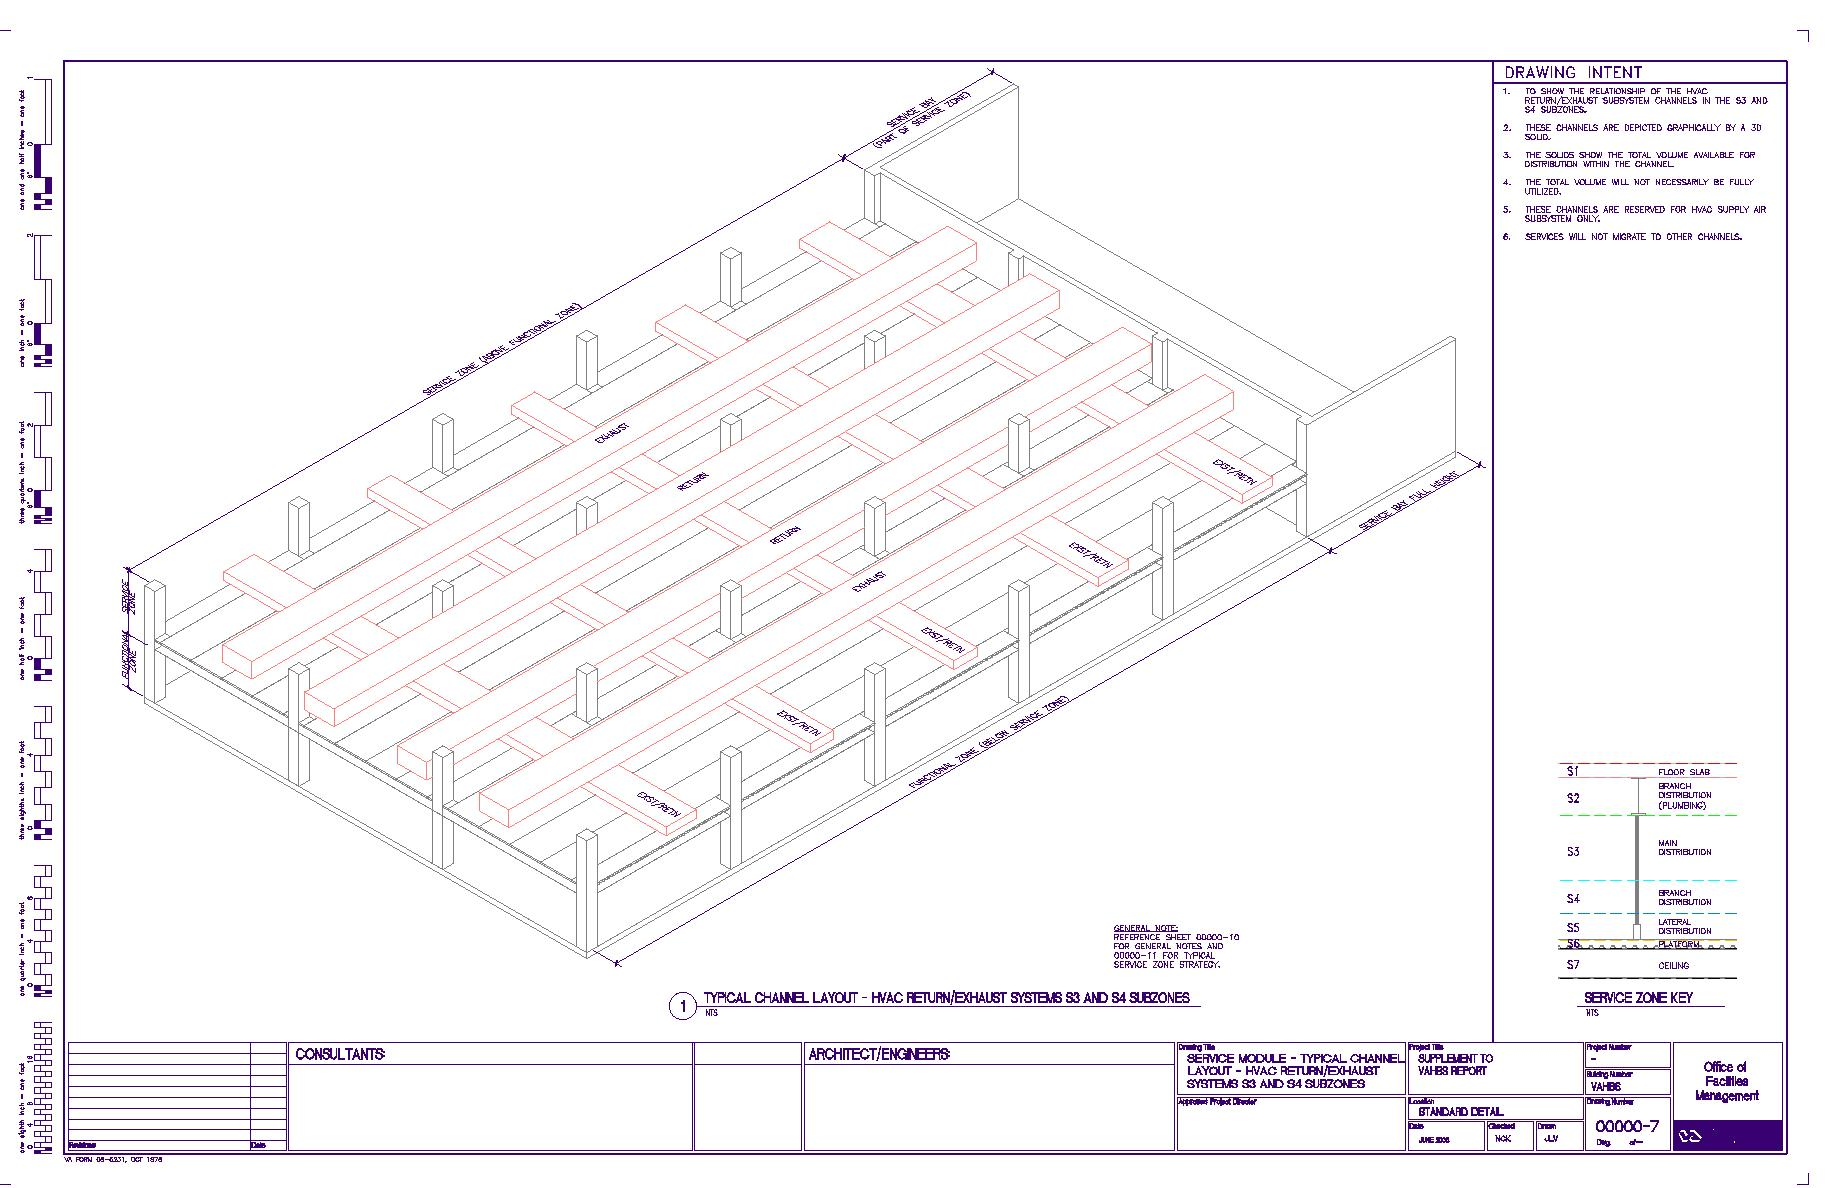 Hvac Systems Layout Drawing For Photos Of